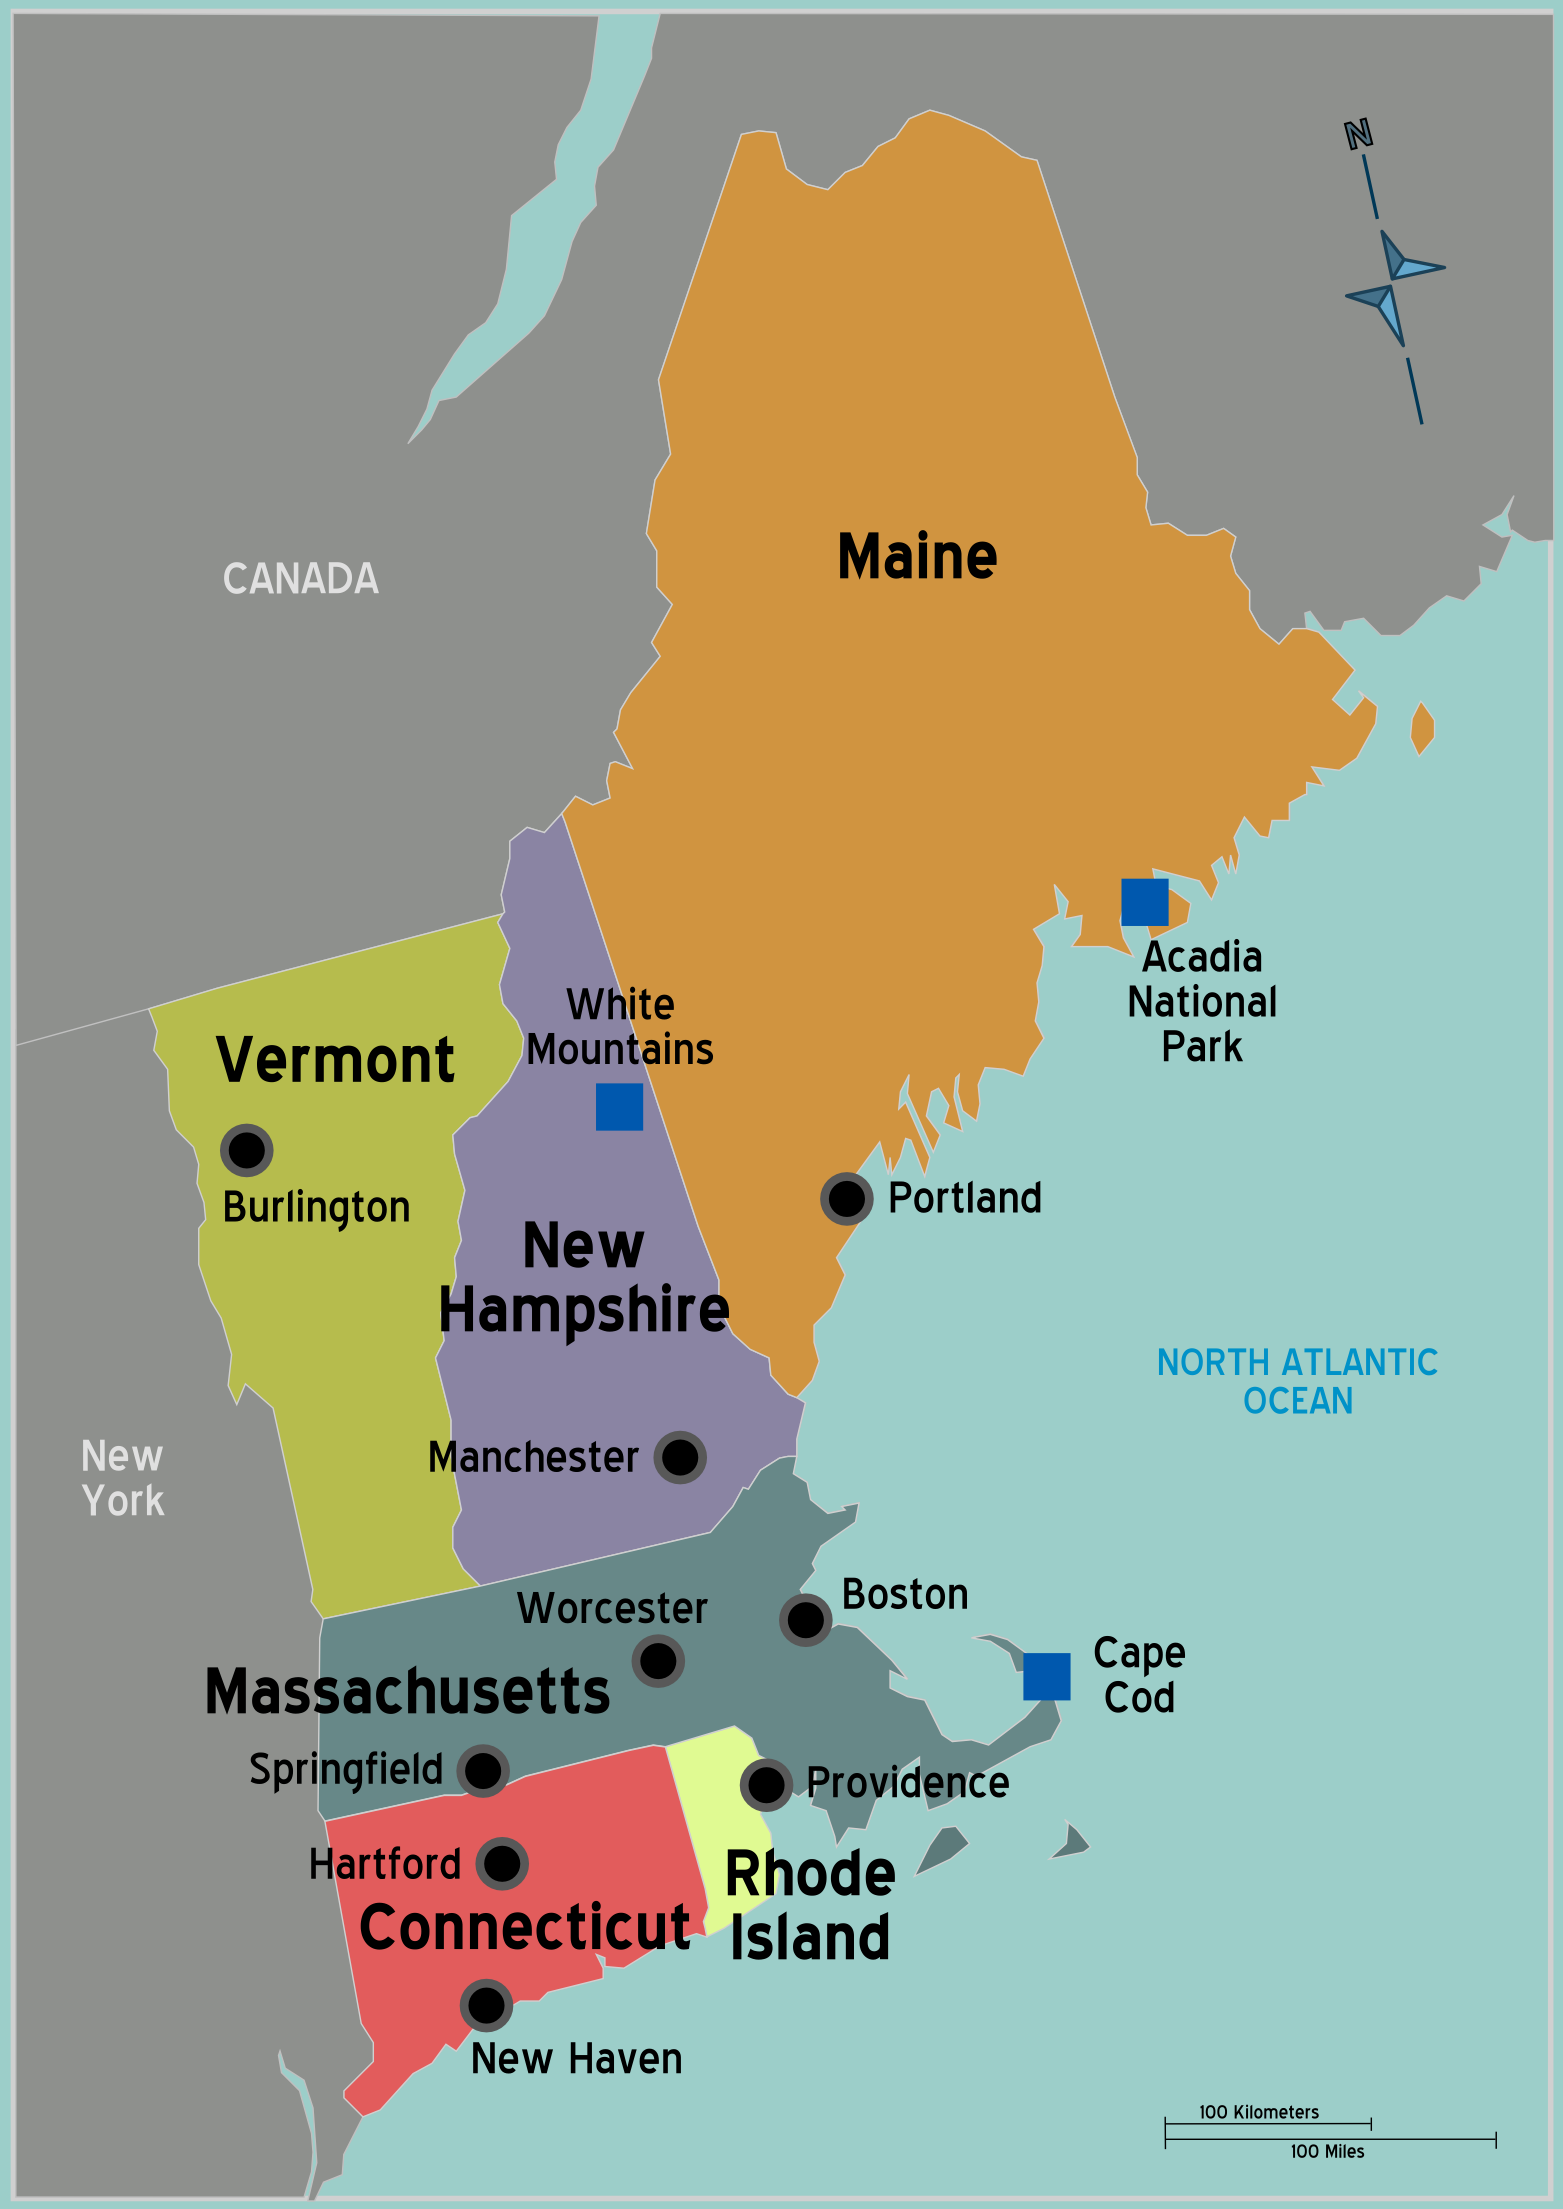 New England States Goal For My Th Birthday Fly To Maine In - Road map maine usa